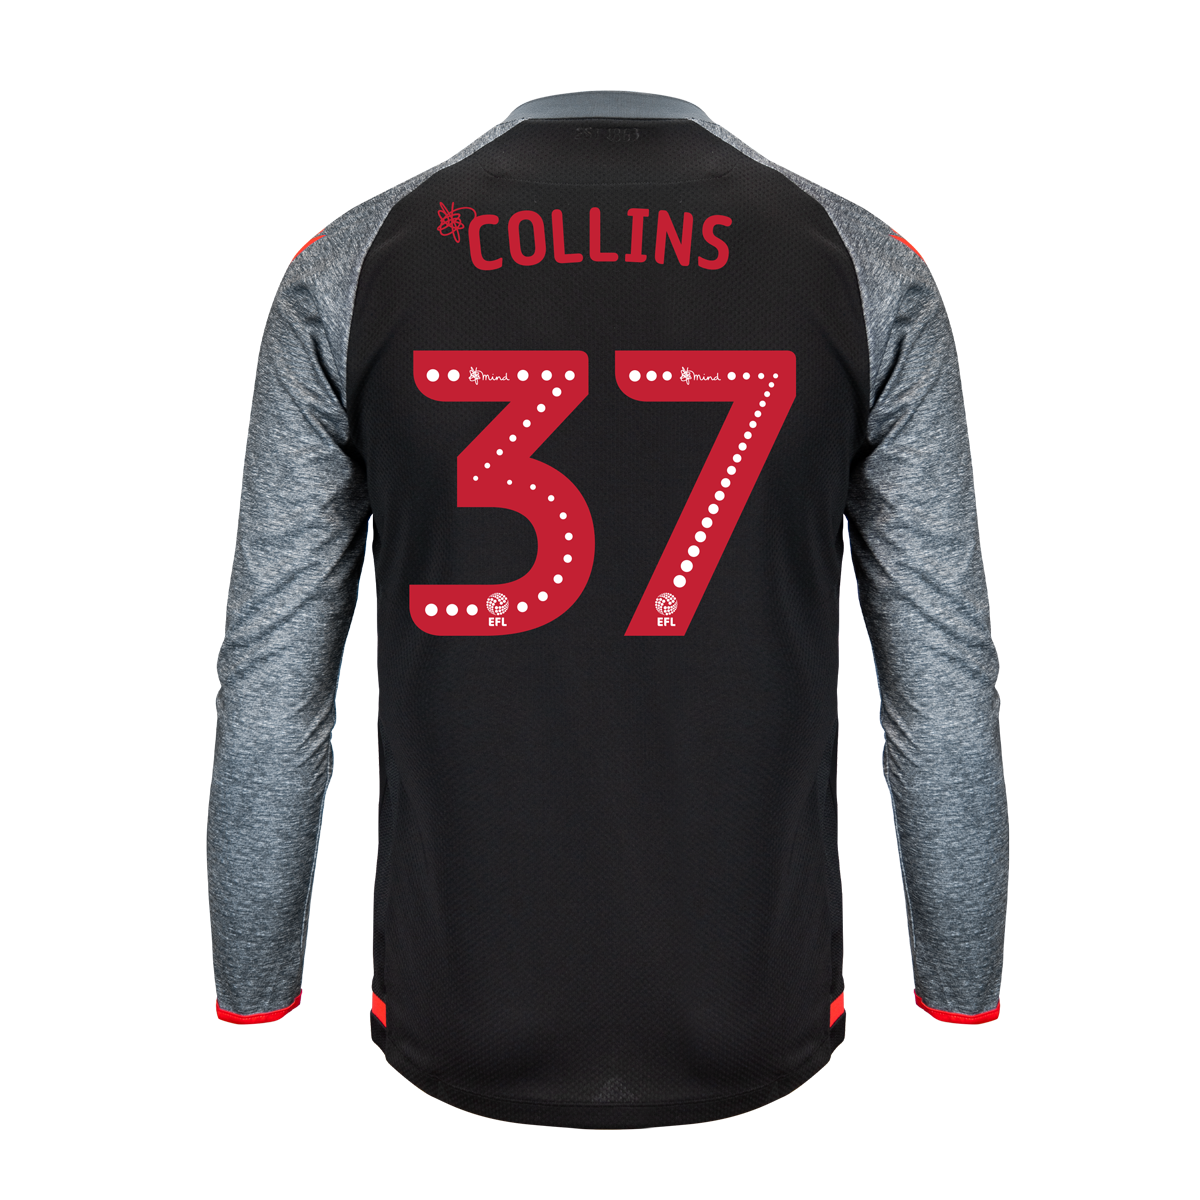 2019/20 Junior Away LS Shirt - Collins